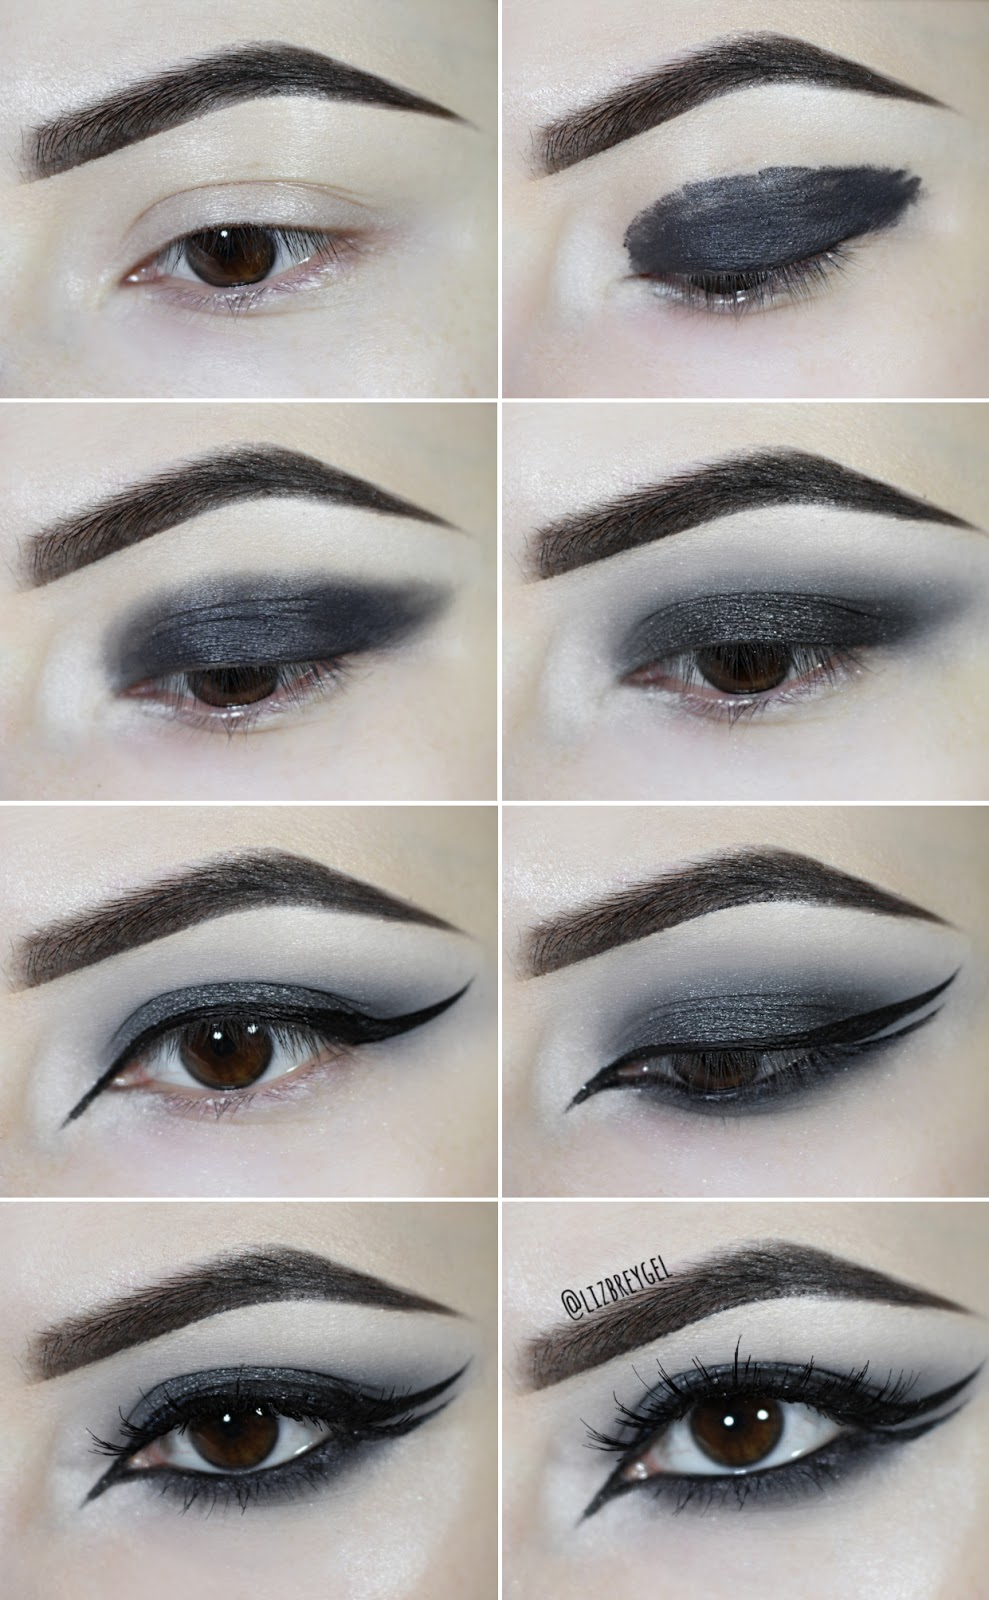 pictures with step by step instructions on how to to a black smoky eye makeup look with double eyeliner